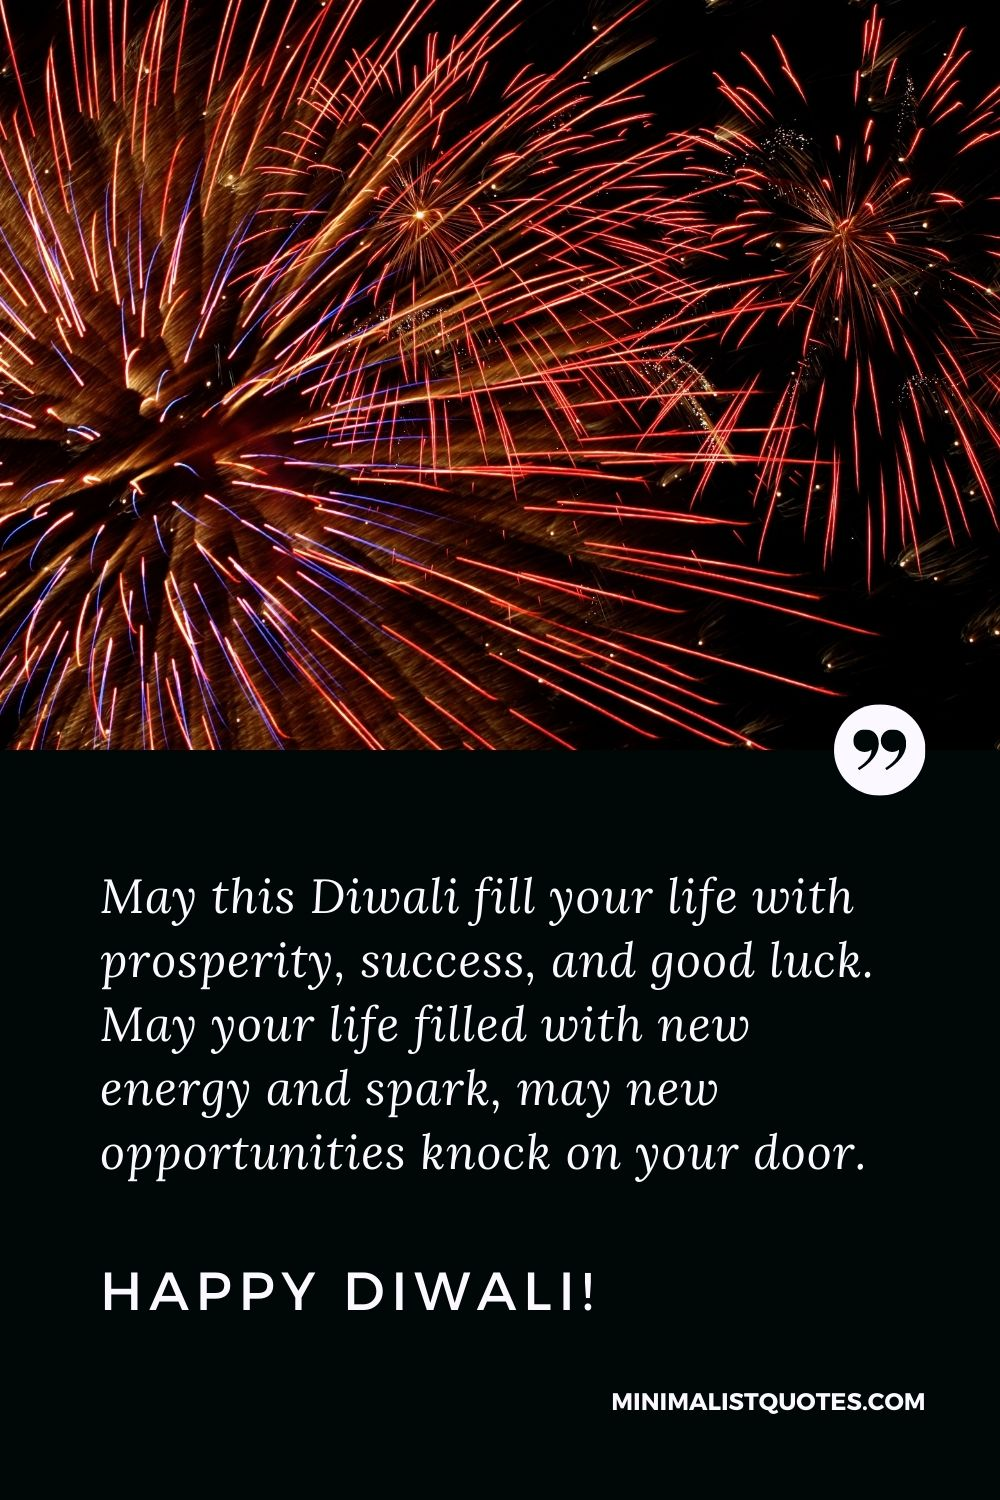 Diwali Quote, Wish & Message With Image: May this Diwali fill your life with prosperity, success, and good luck.May your life filled with new energy and spark, may new opportunities knock on your door. Happy Diwali!